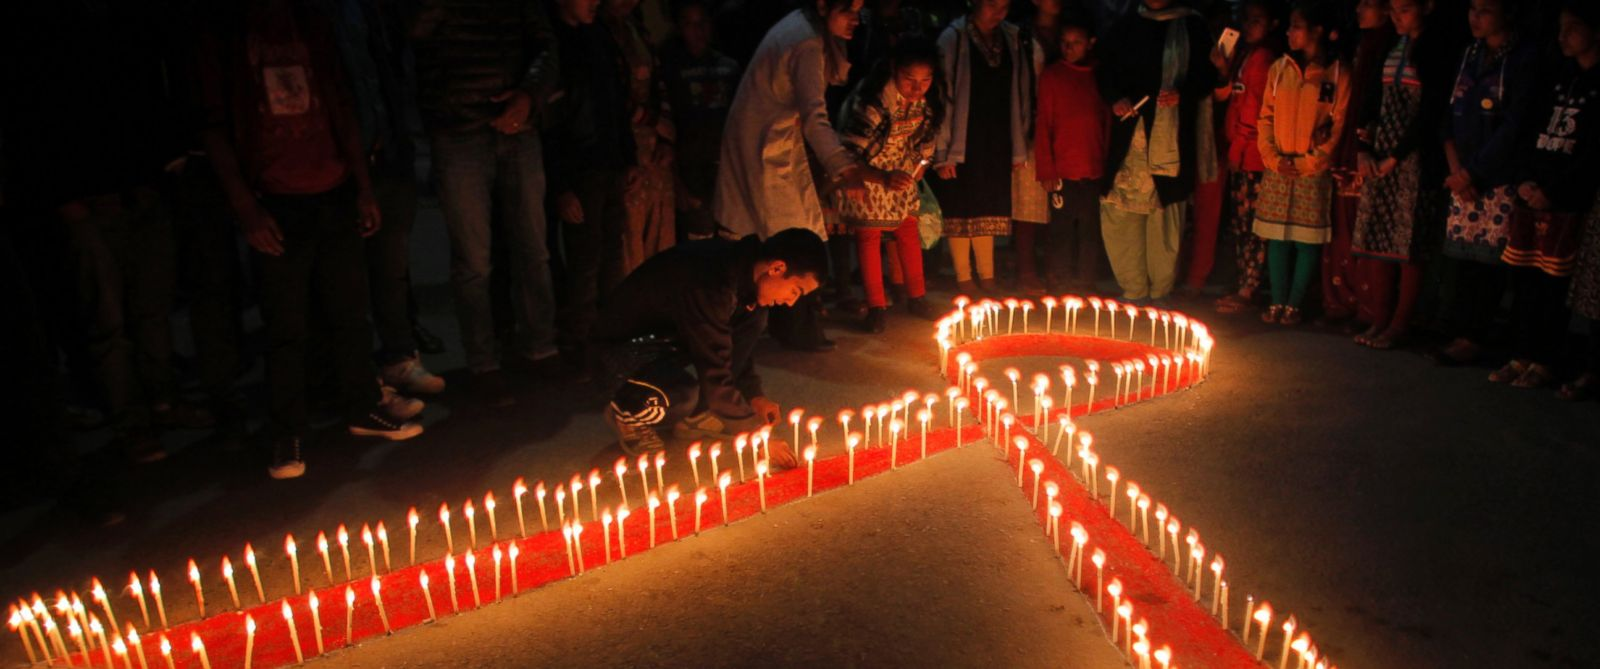 PHOTO: Nepalese women and children from ?Maiti Nepal?, a rehabilitation center for victims of sex trafficking, light candles on the eve of World AIDS Day in Kathmandu, Nepal, Nov. 30, 2015.